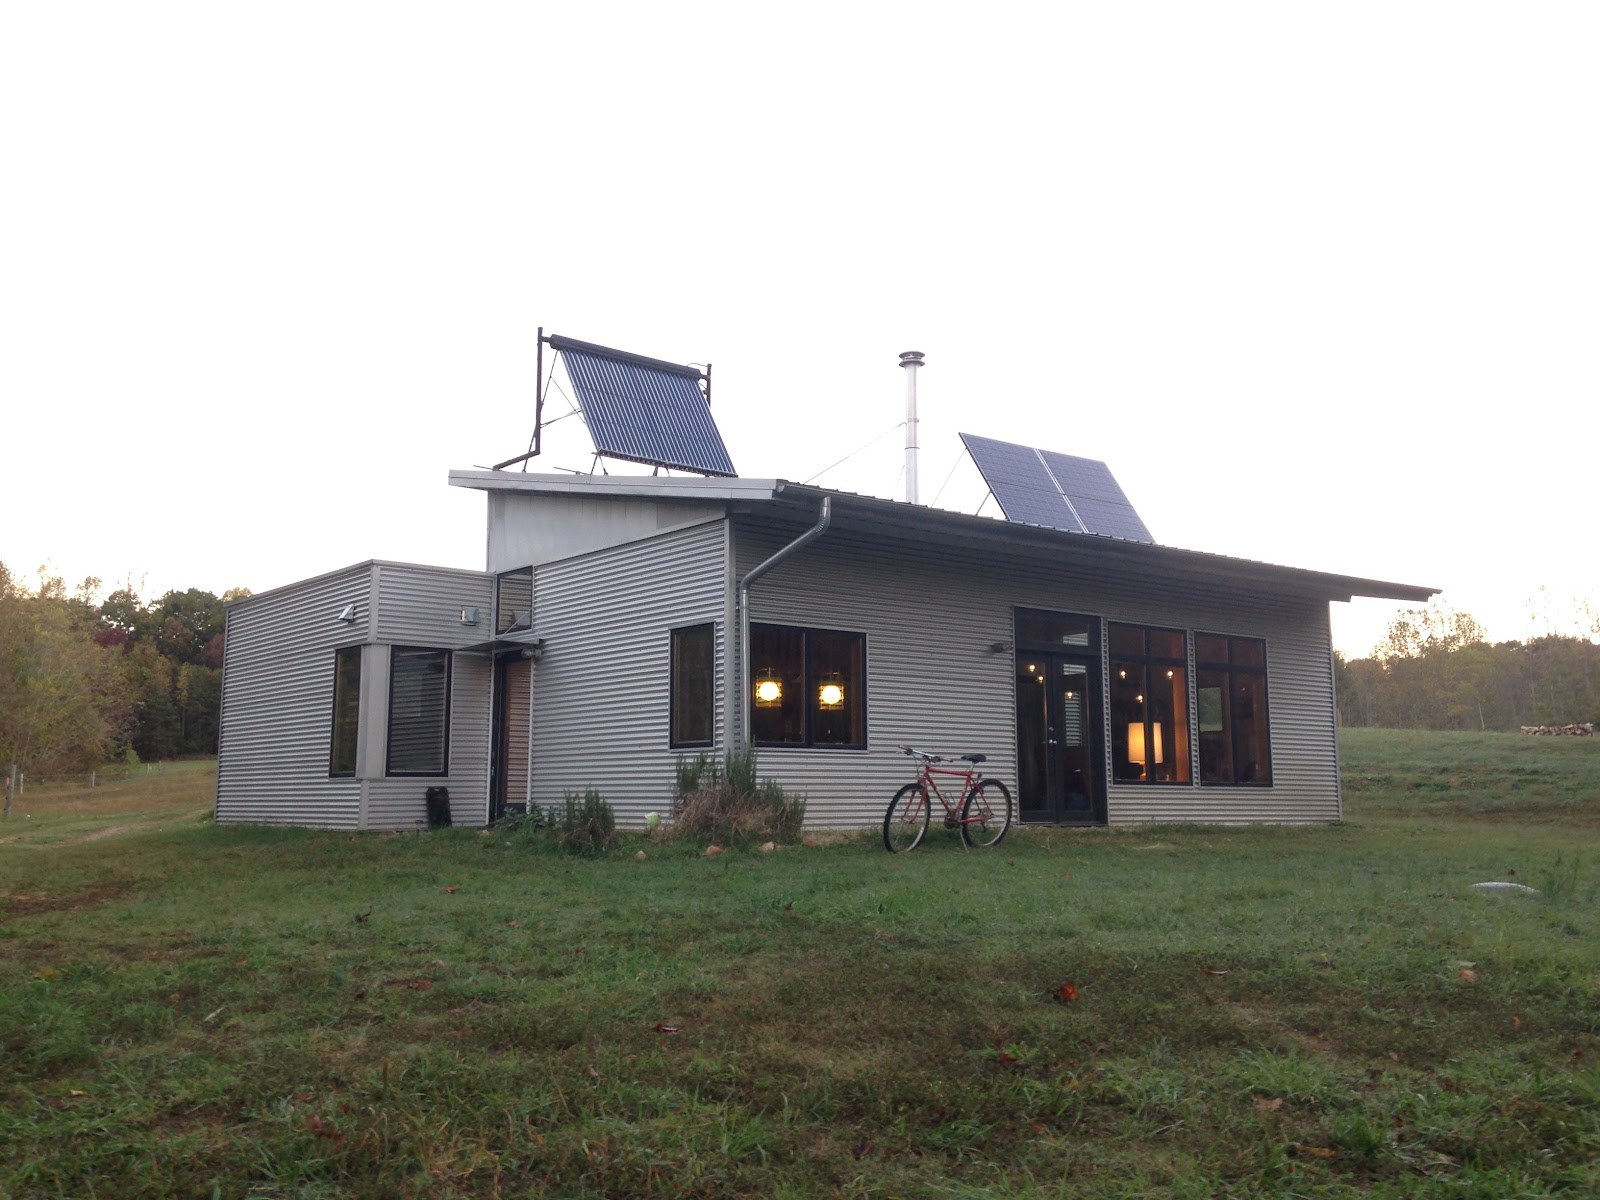 Passive solar sip prefab house has city sister visit for Prefab sip homes